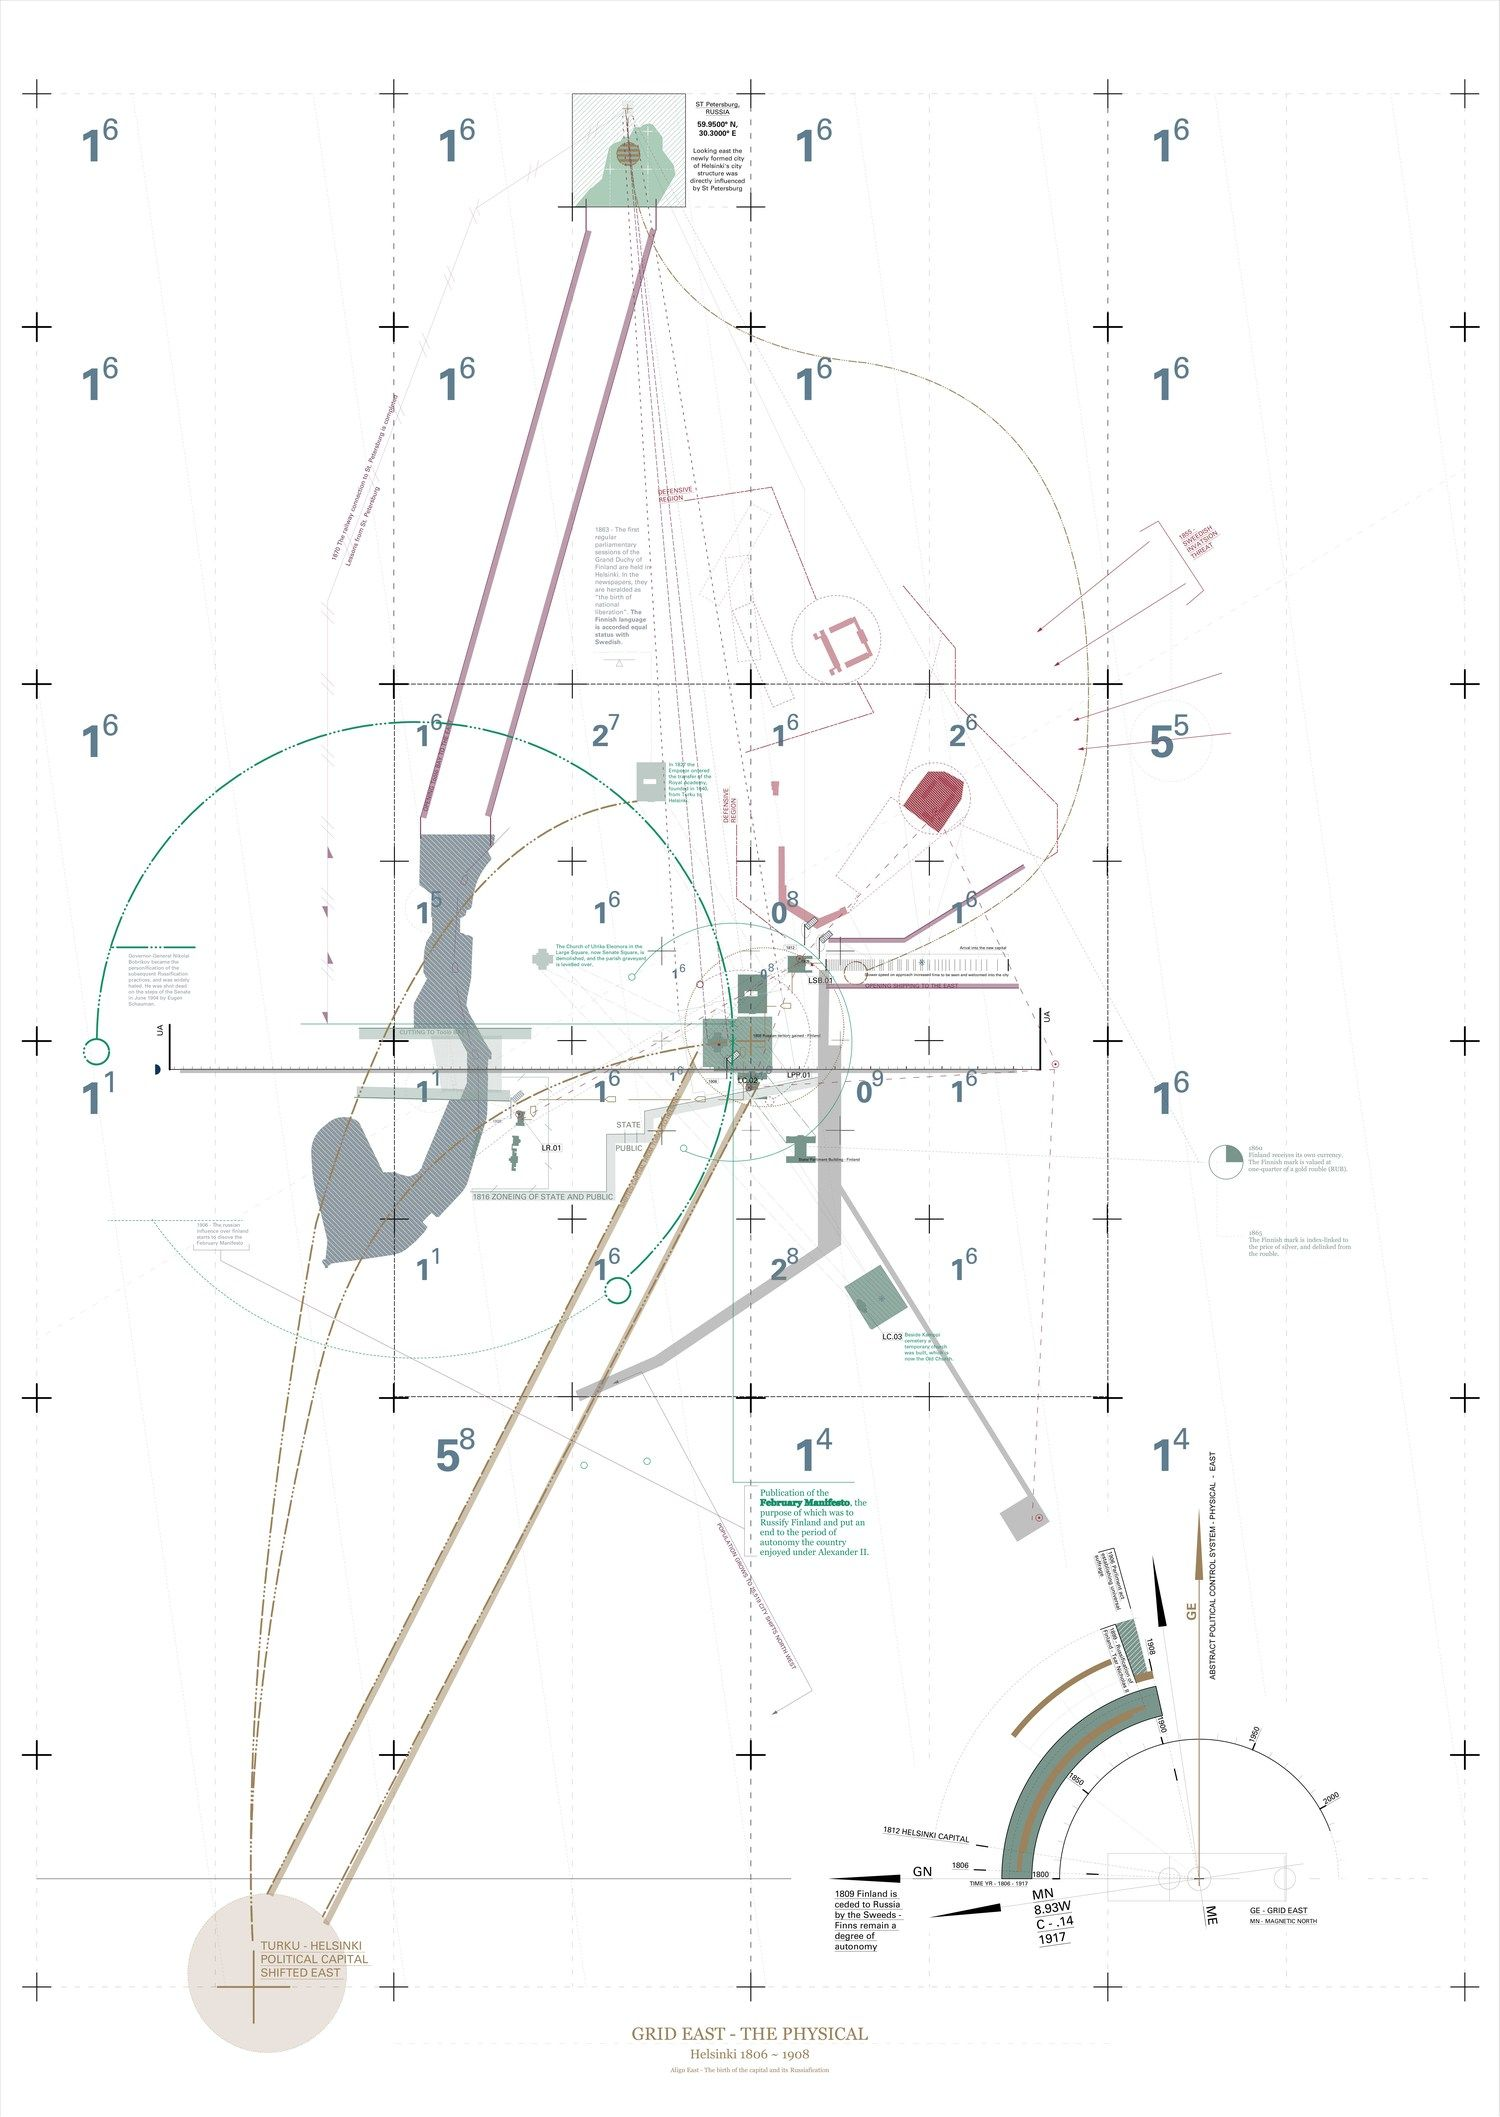 Jl 01 East Physical Site Analysis Pinterest Diagram Architectural Drawings